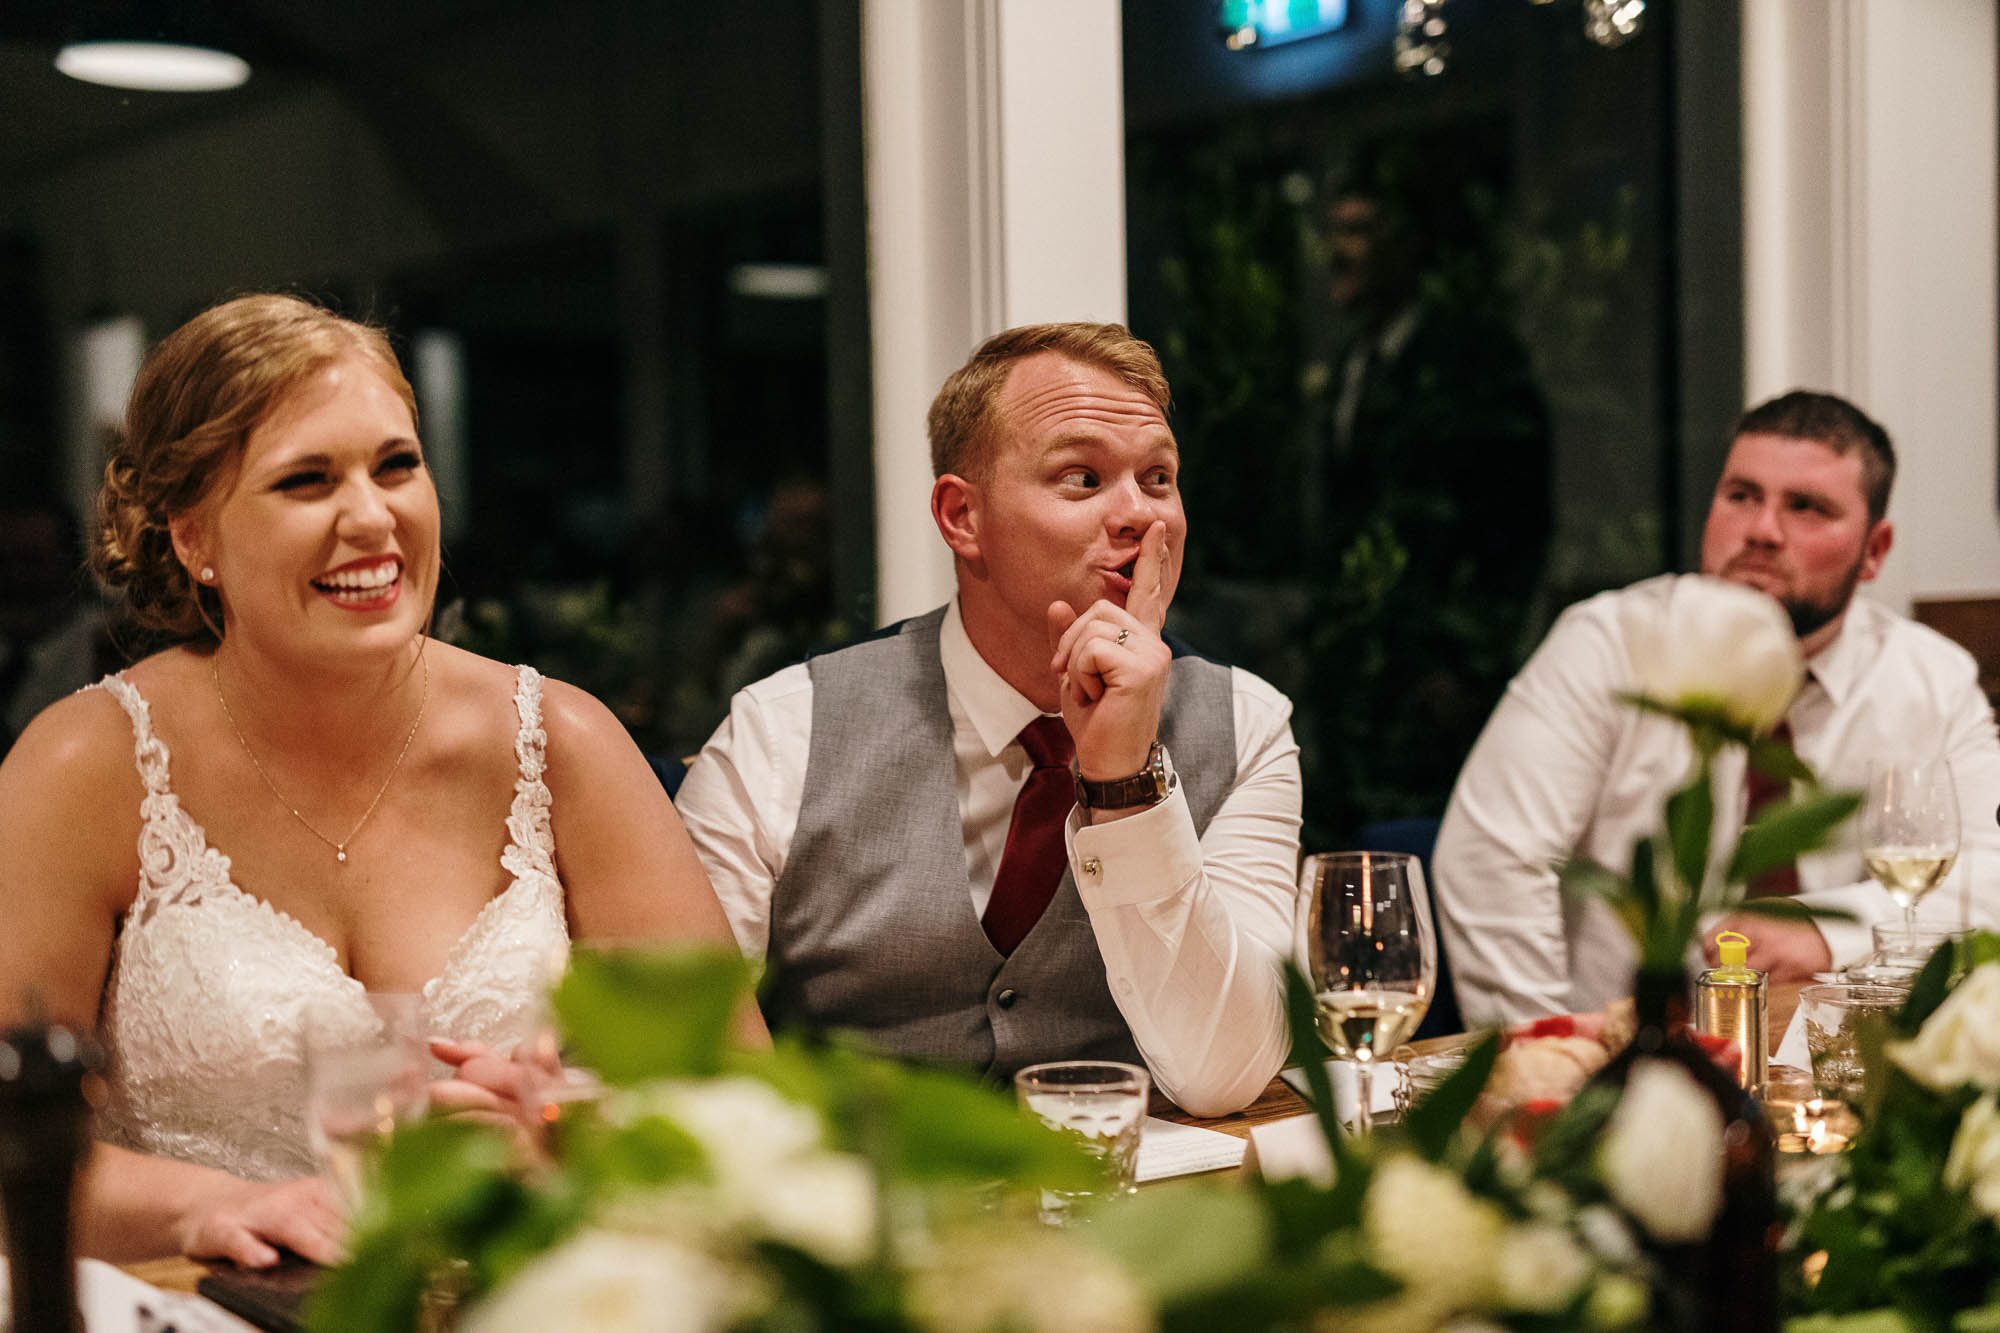 lachlan-scallion-alana-andrew-melbourne-mornington-peninsula-merricksgeneralwinestore-relaxed-candid-wedding-photography-587.jpg